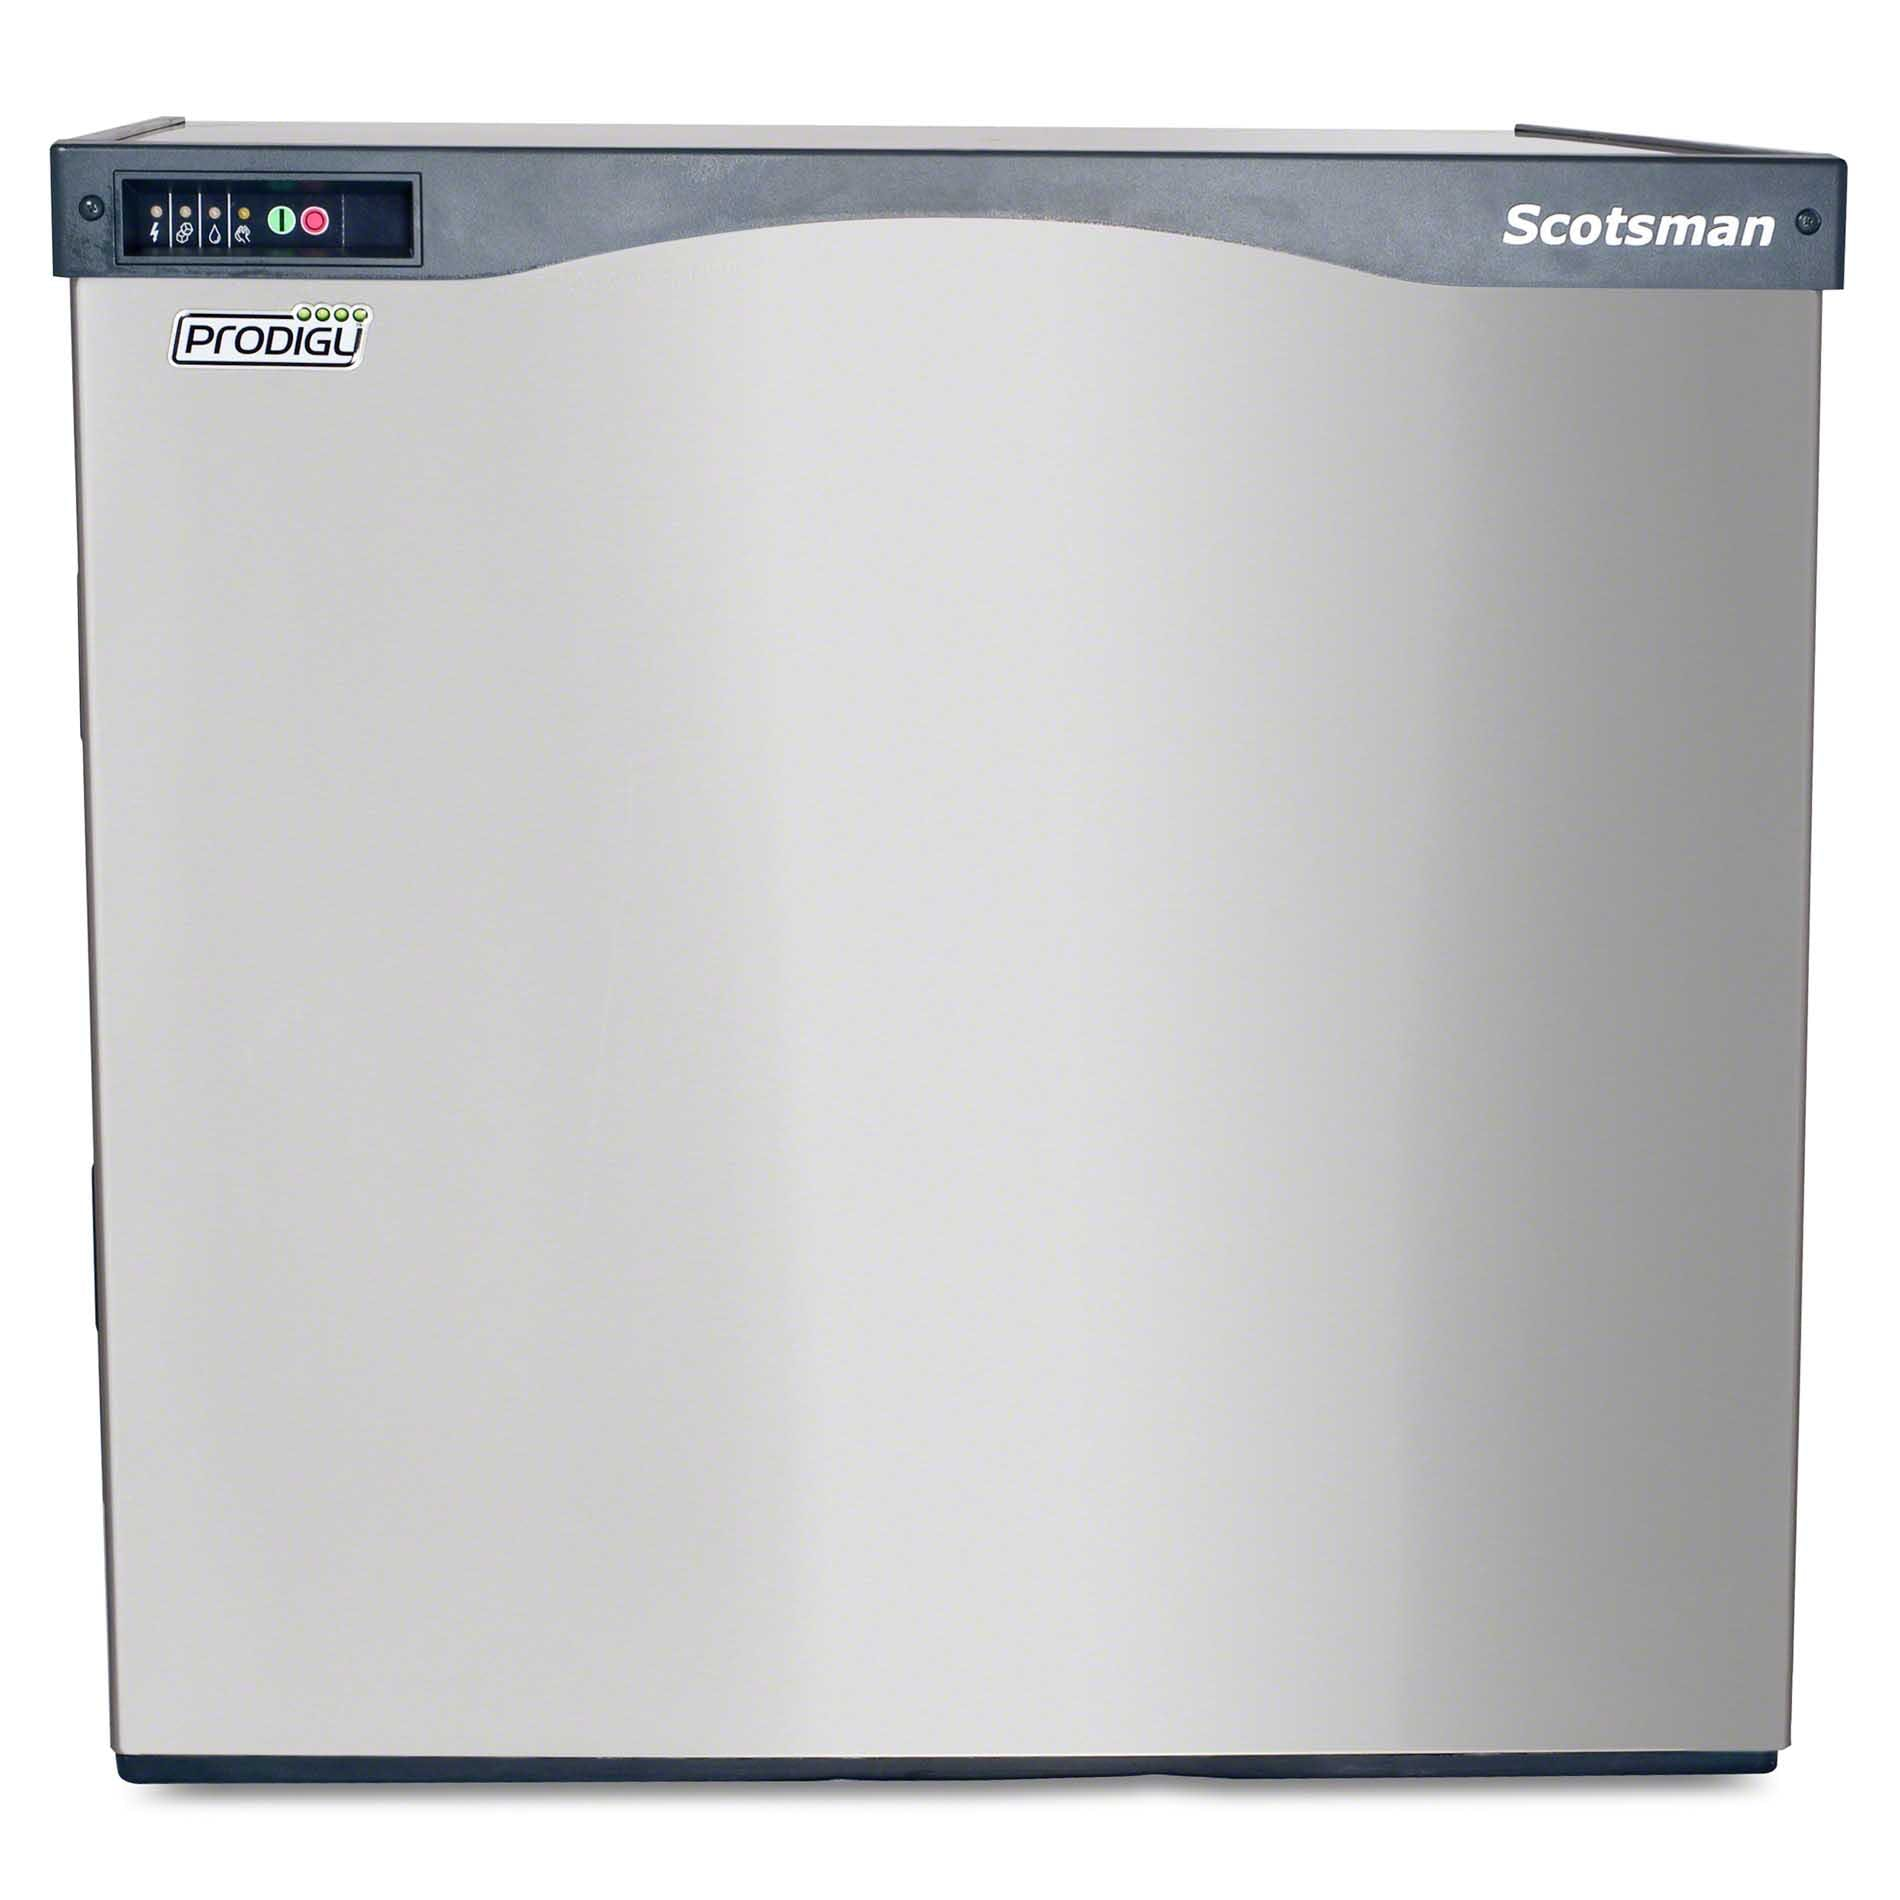 Scotsman - C1030MW-32A 1009 lb Full Size Cube Ice Machine - Prodigy Series Ice machine sold by Food Service Warehouse